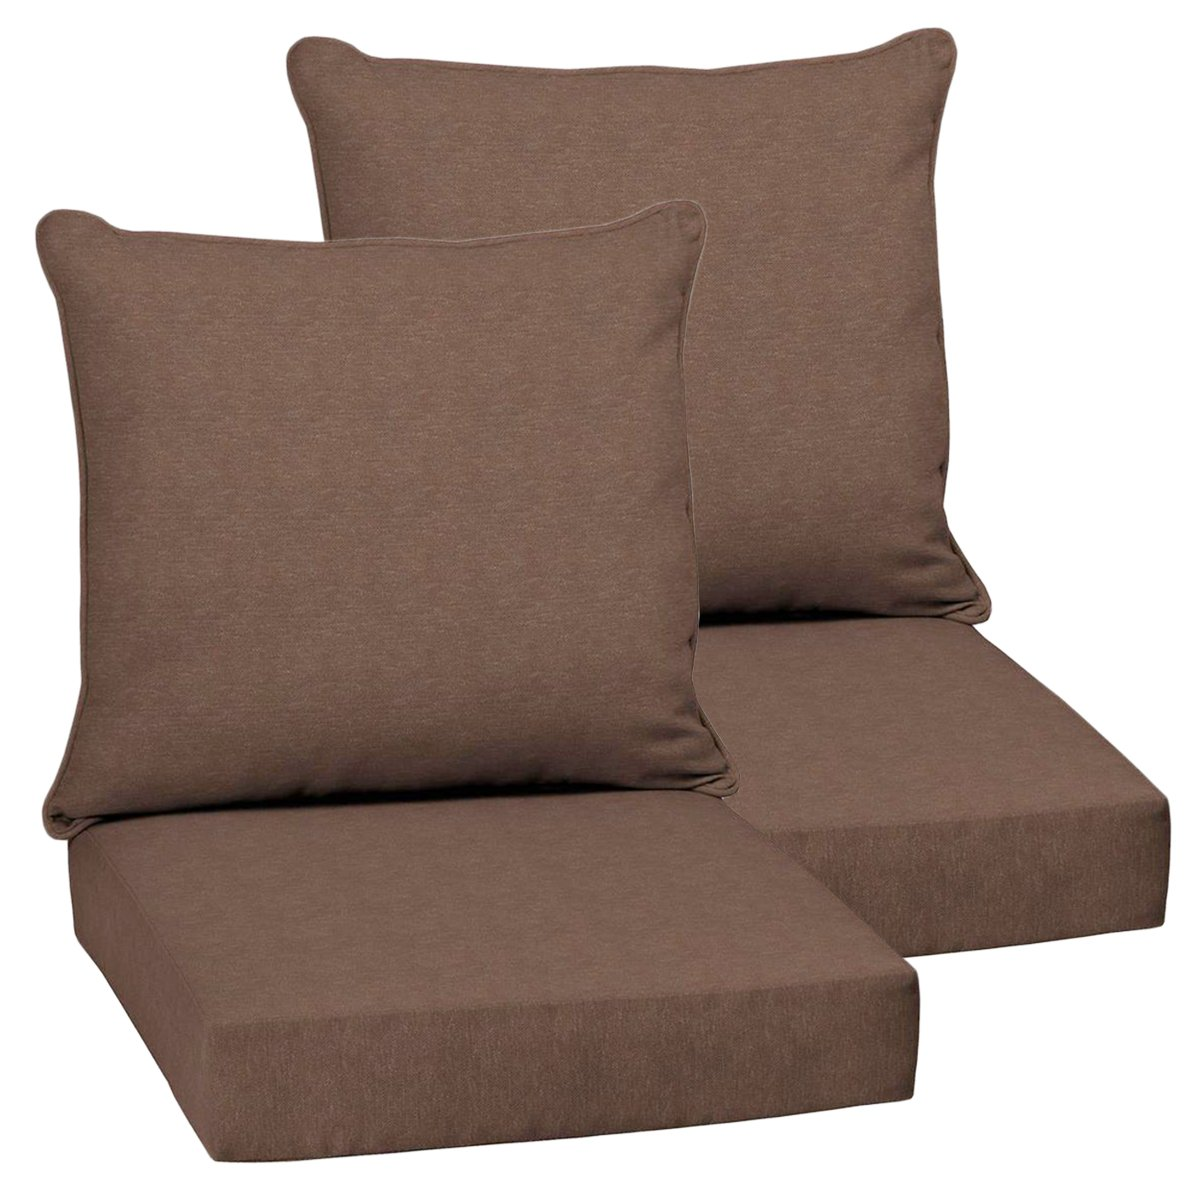 Set of 2 Deep Seating Outdoor Dining Chair Cushions 24''x 46.5''x 5.75''T; H-24 in Olefin Fabric Chocolate Lamar Texture by Comfort Classics